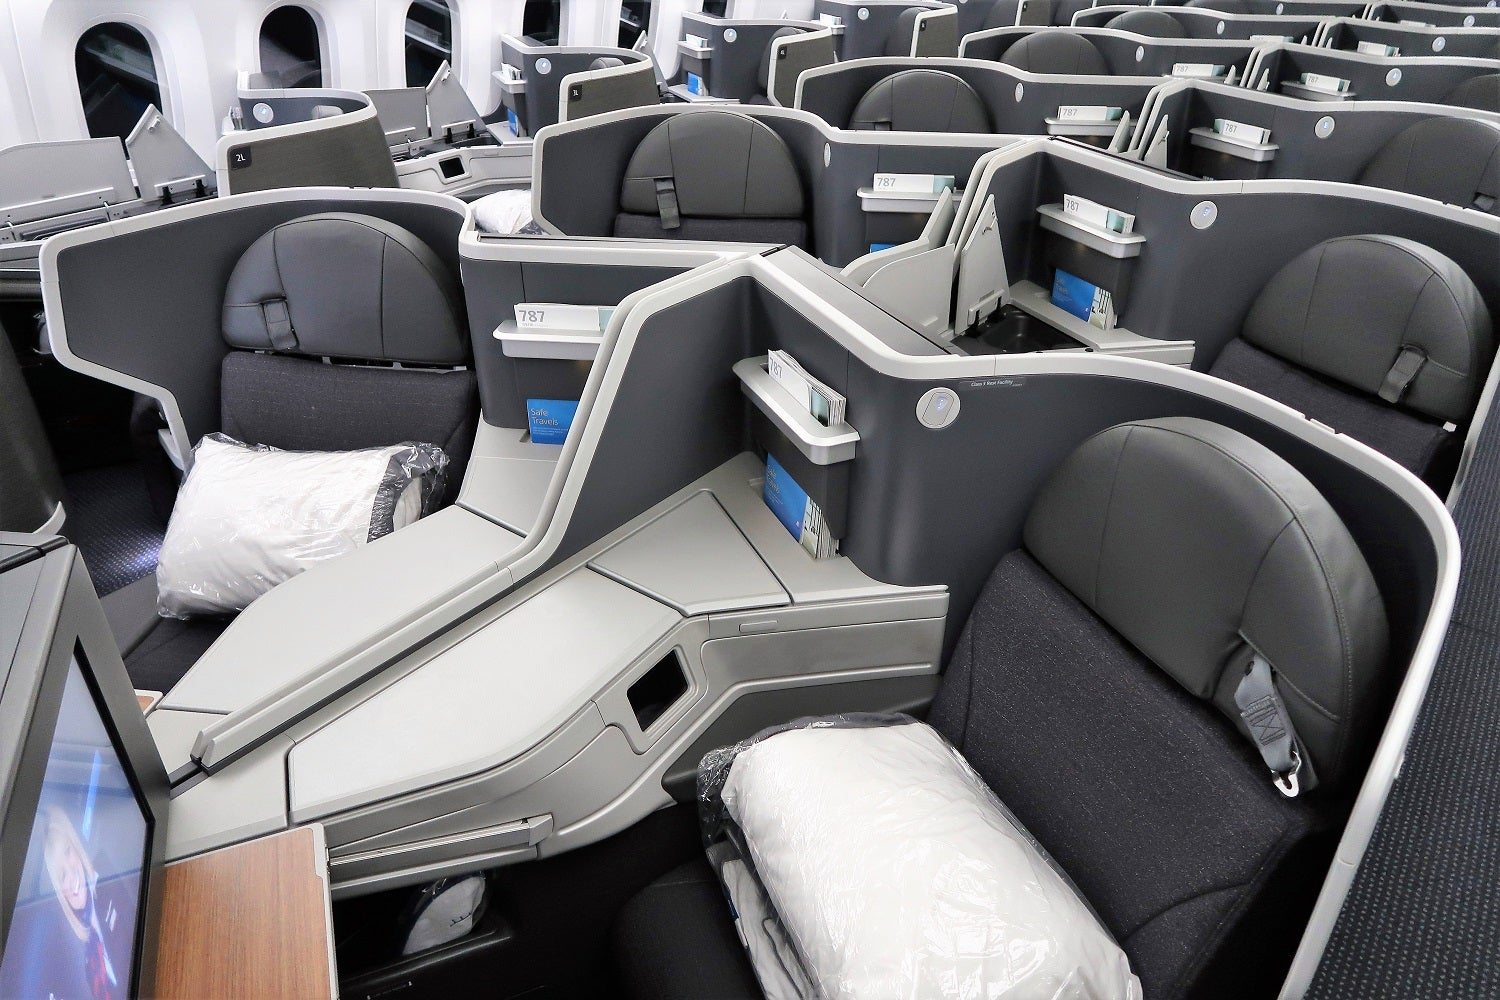 The Ultimate Guide to Getting Upgraded on American Airlines